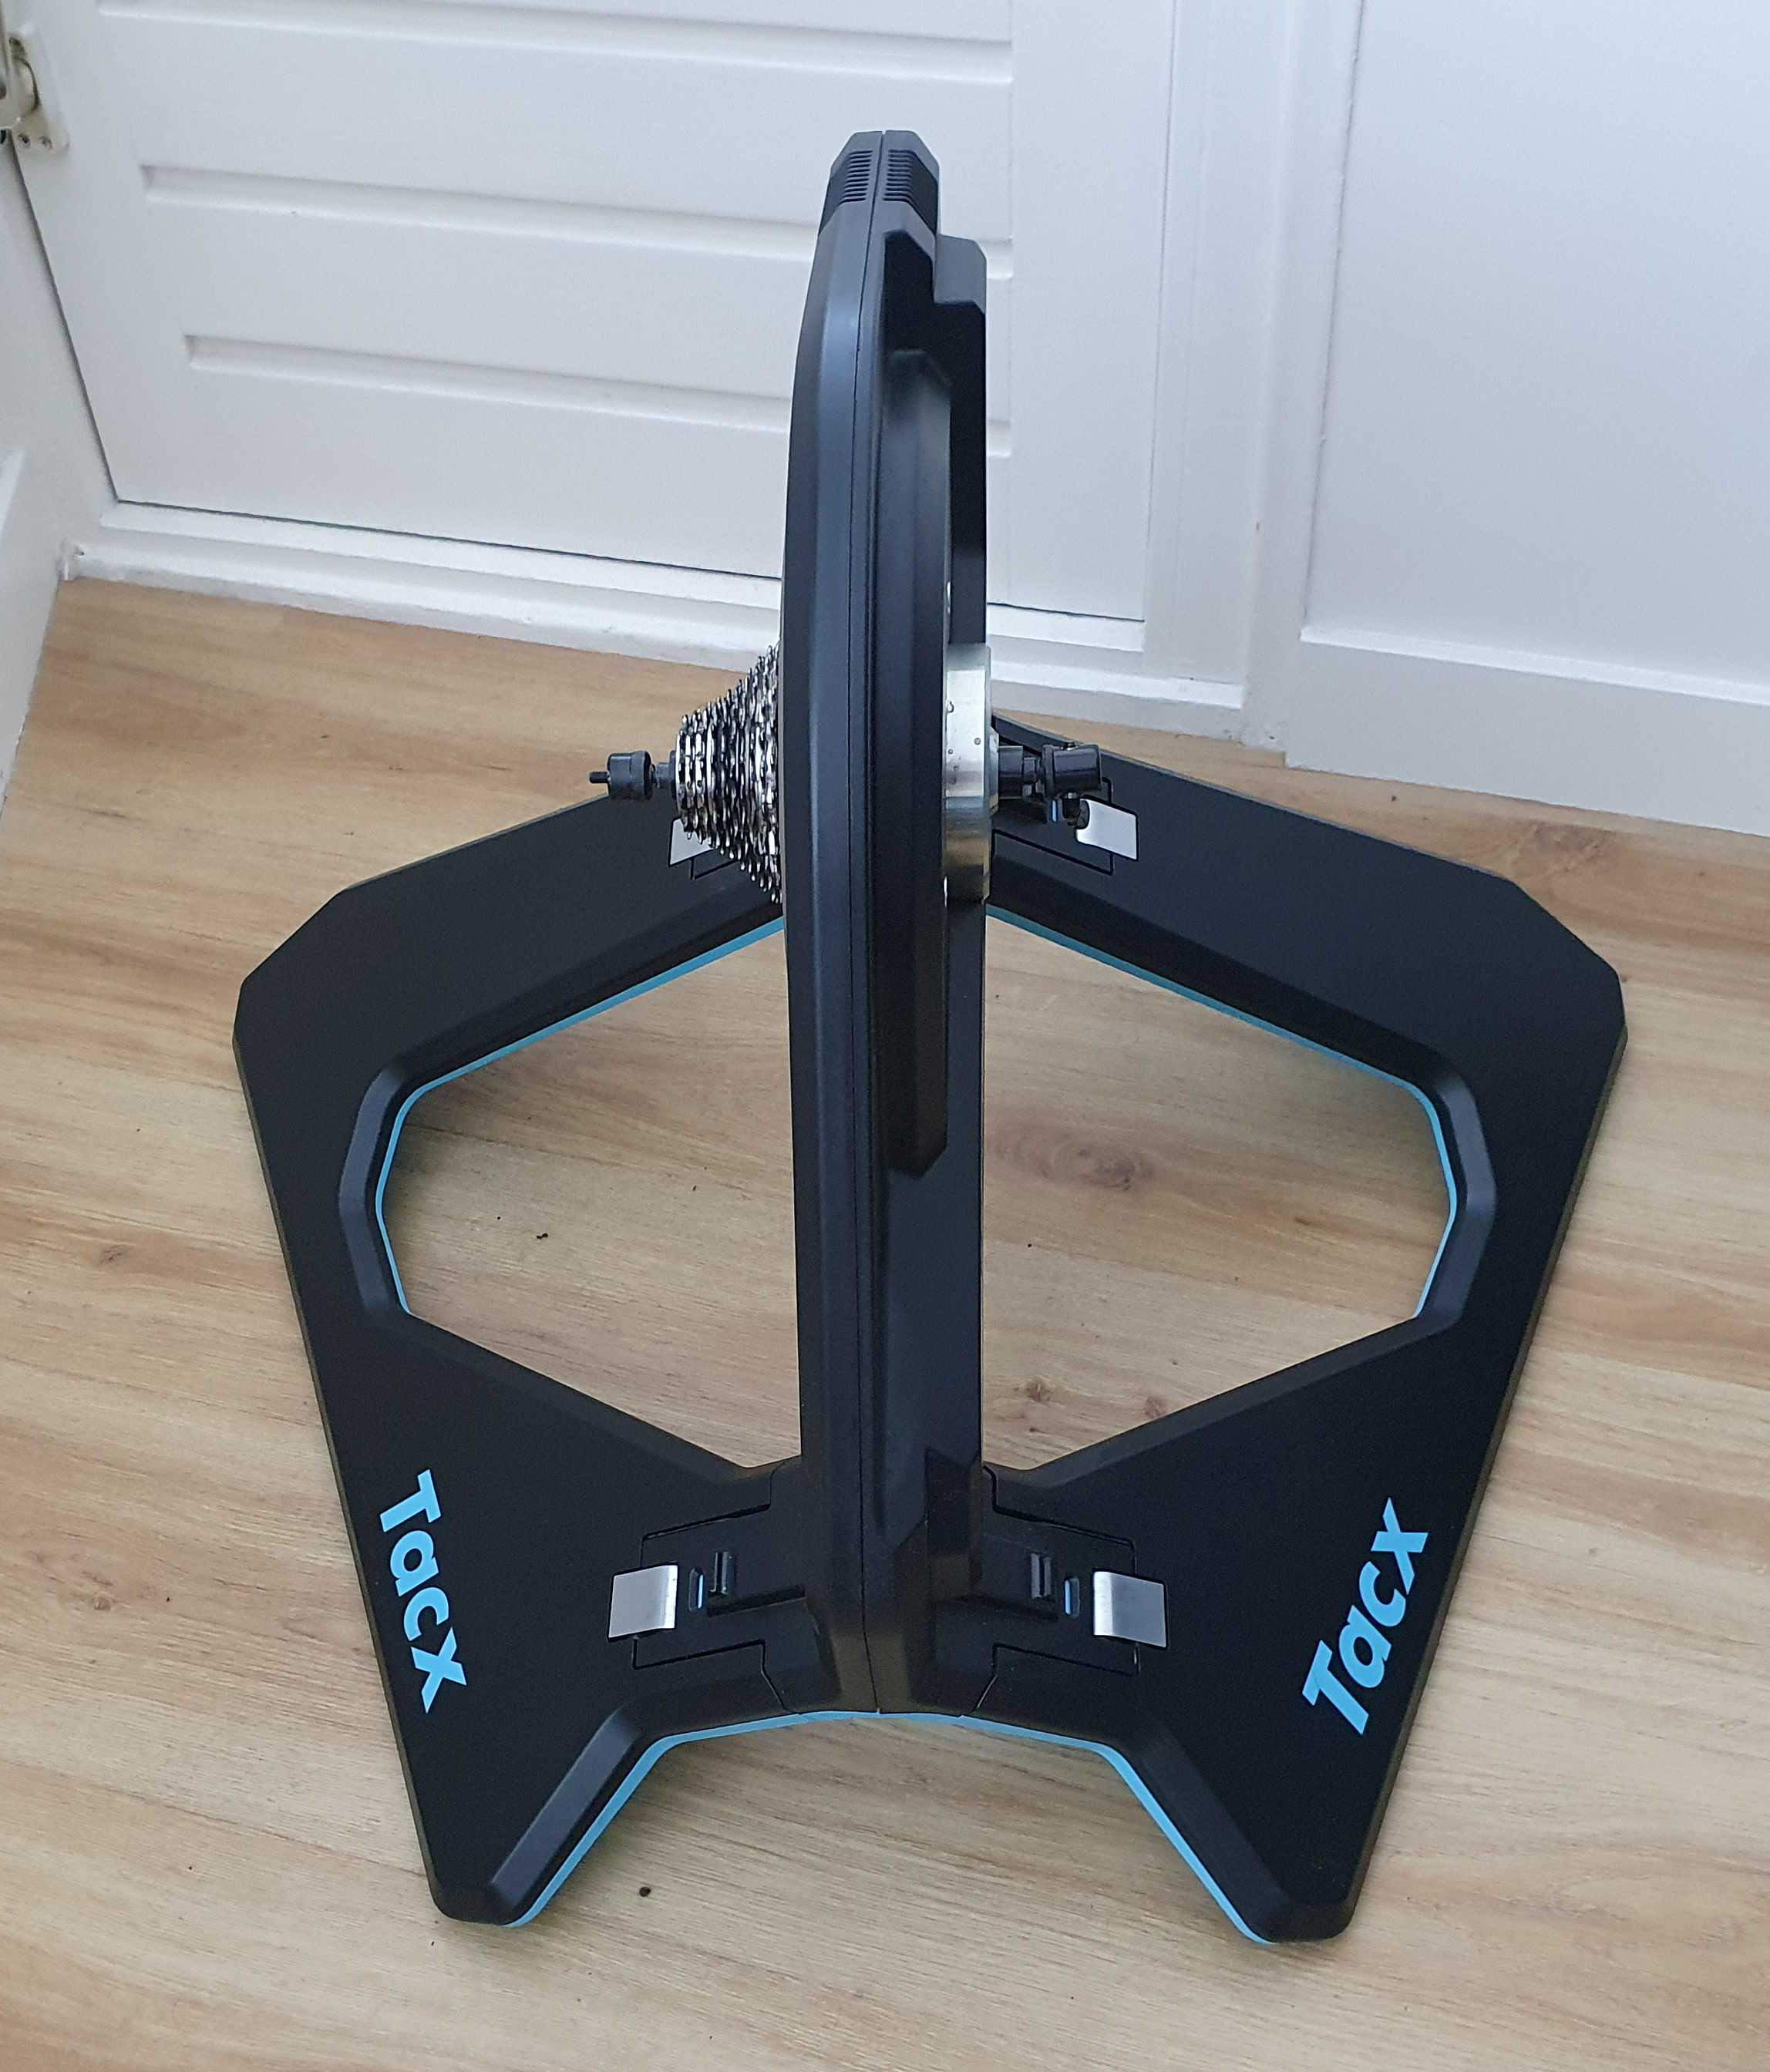 Tacx, Neo, front view